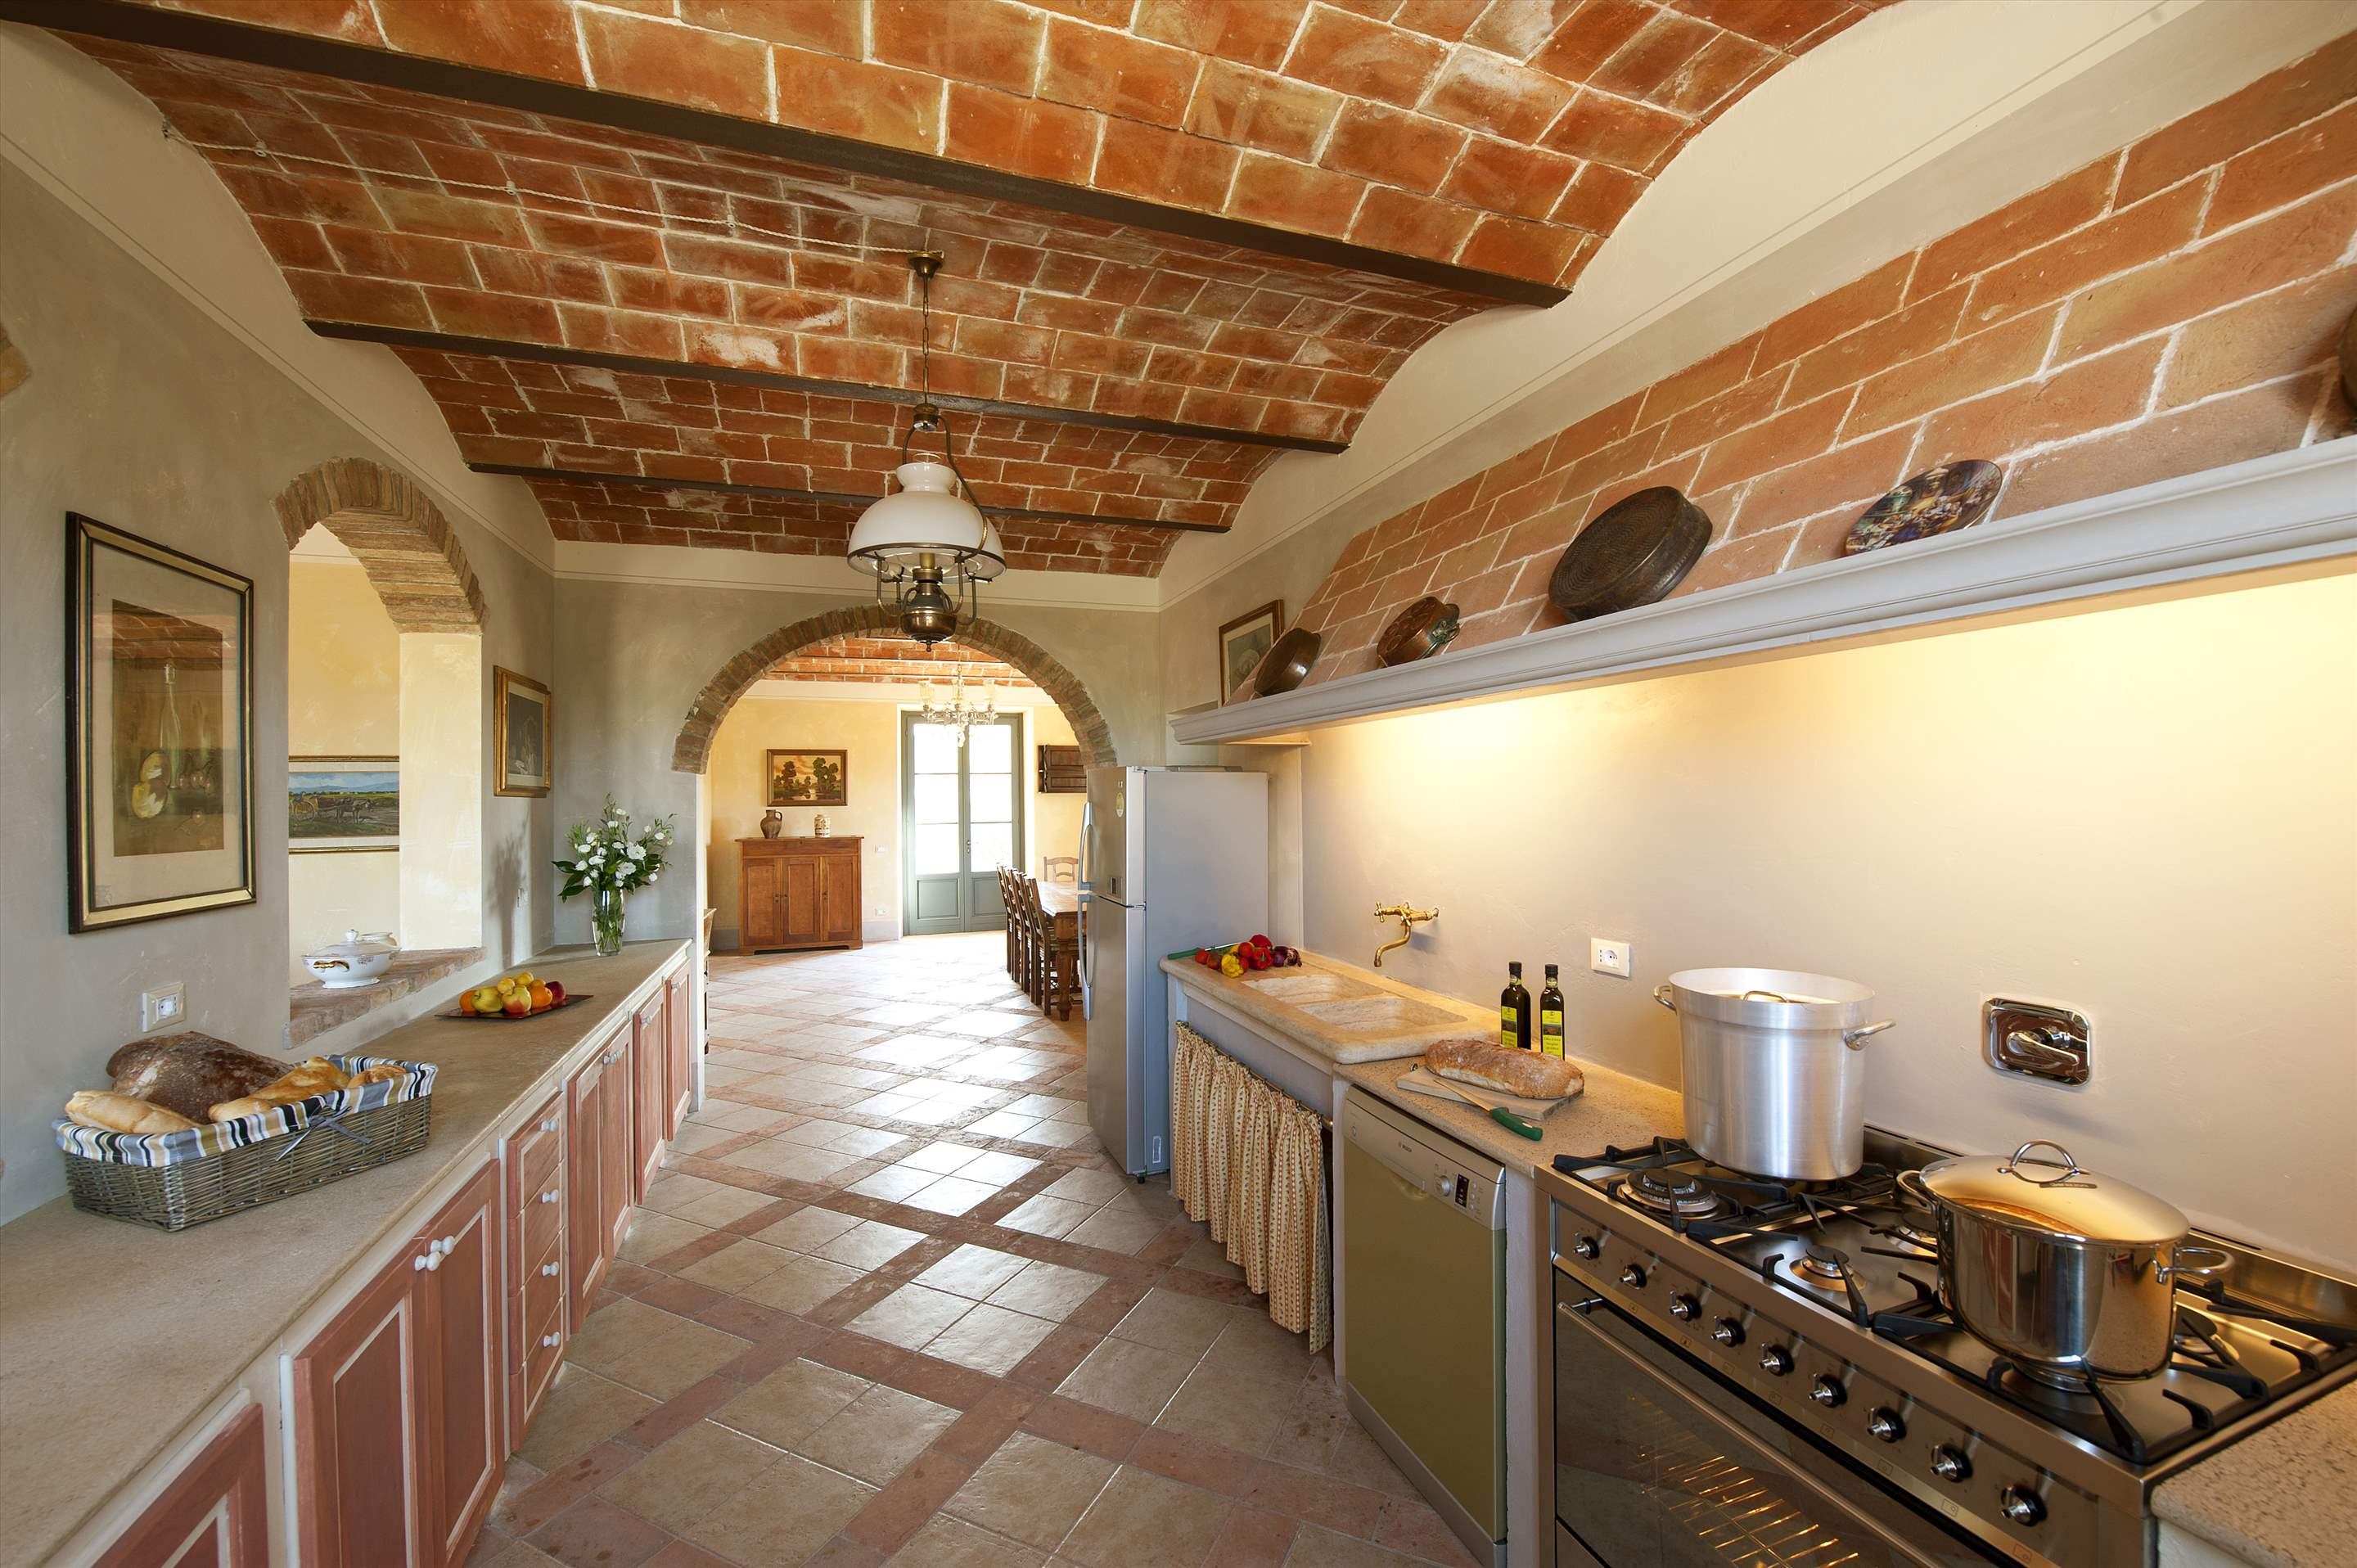 Podere Casacce, Ground Floor, 4 bedroom villa in Tuscany Coast, Tuscany Photo #8